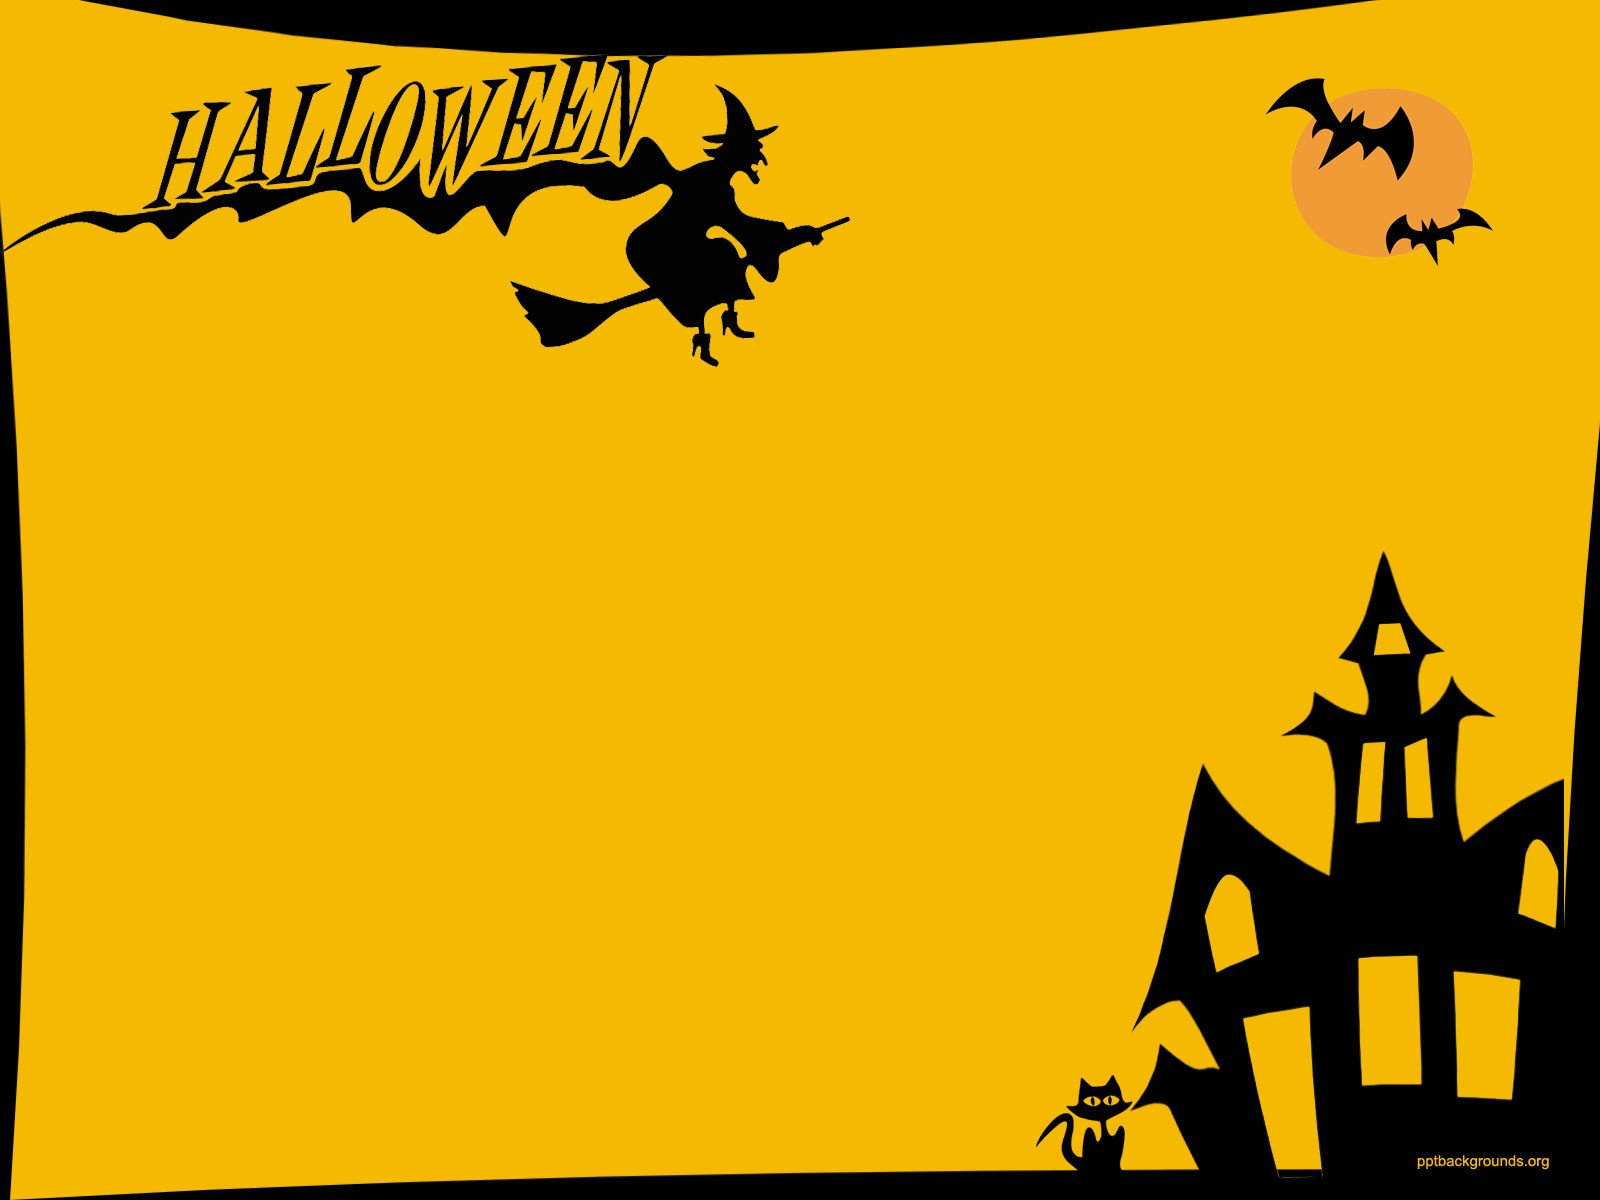 Halloween Backgrounds For PowerPoint – Festival Collections